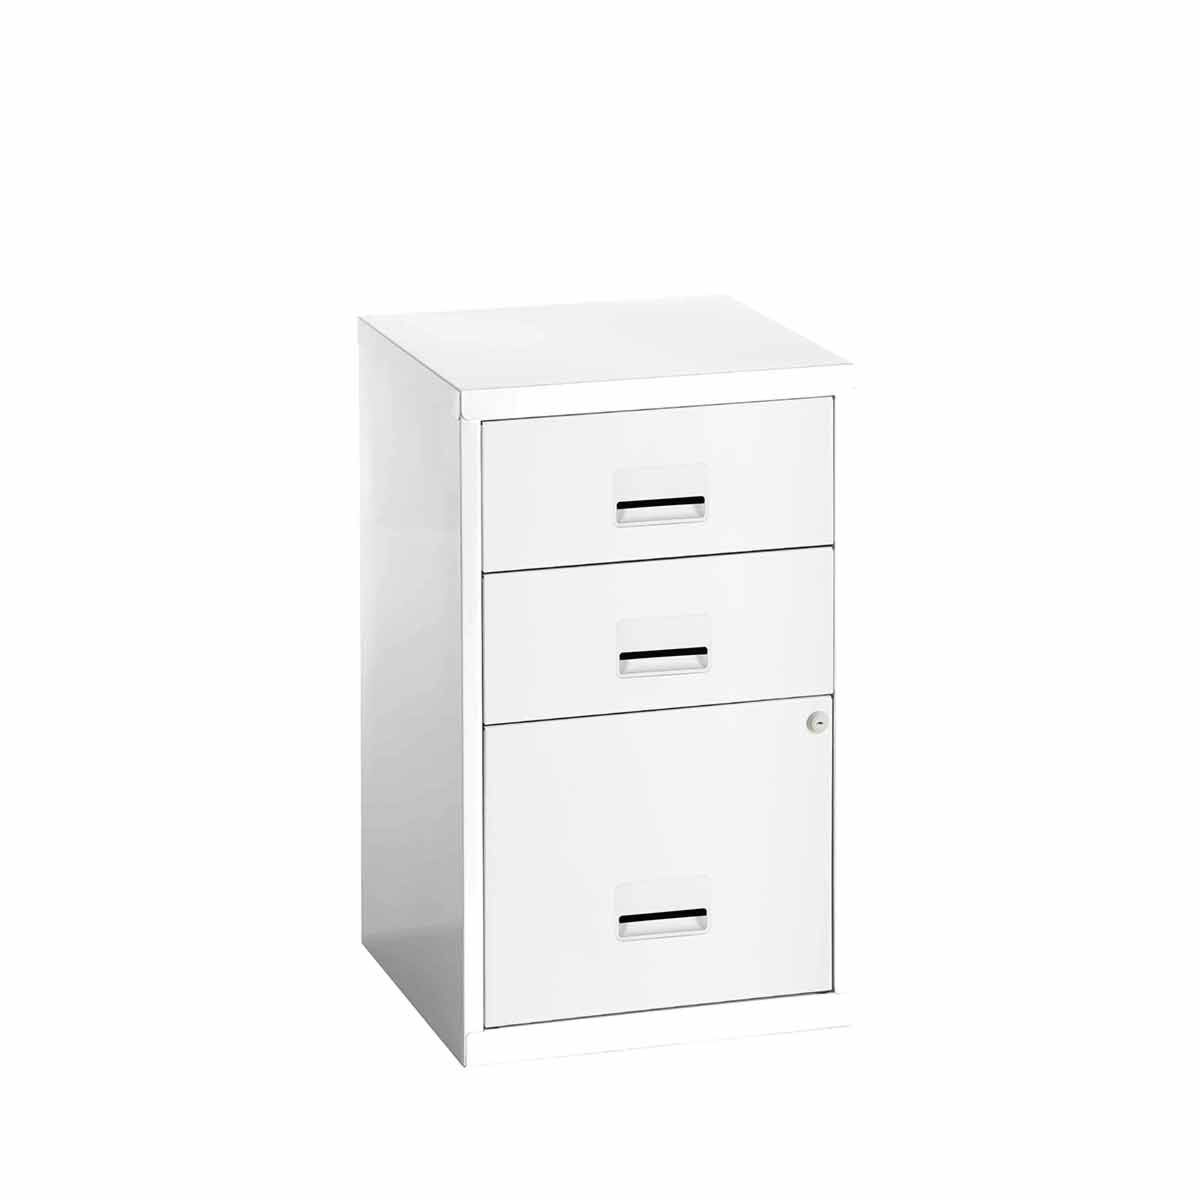 Pierre Henry 3 Drawer Combi Filing Cabinet A4 White